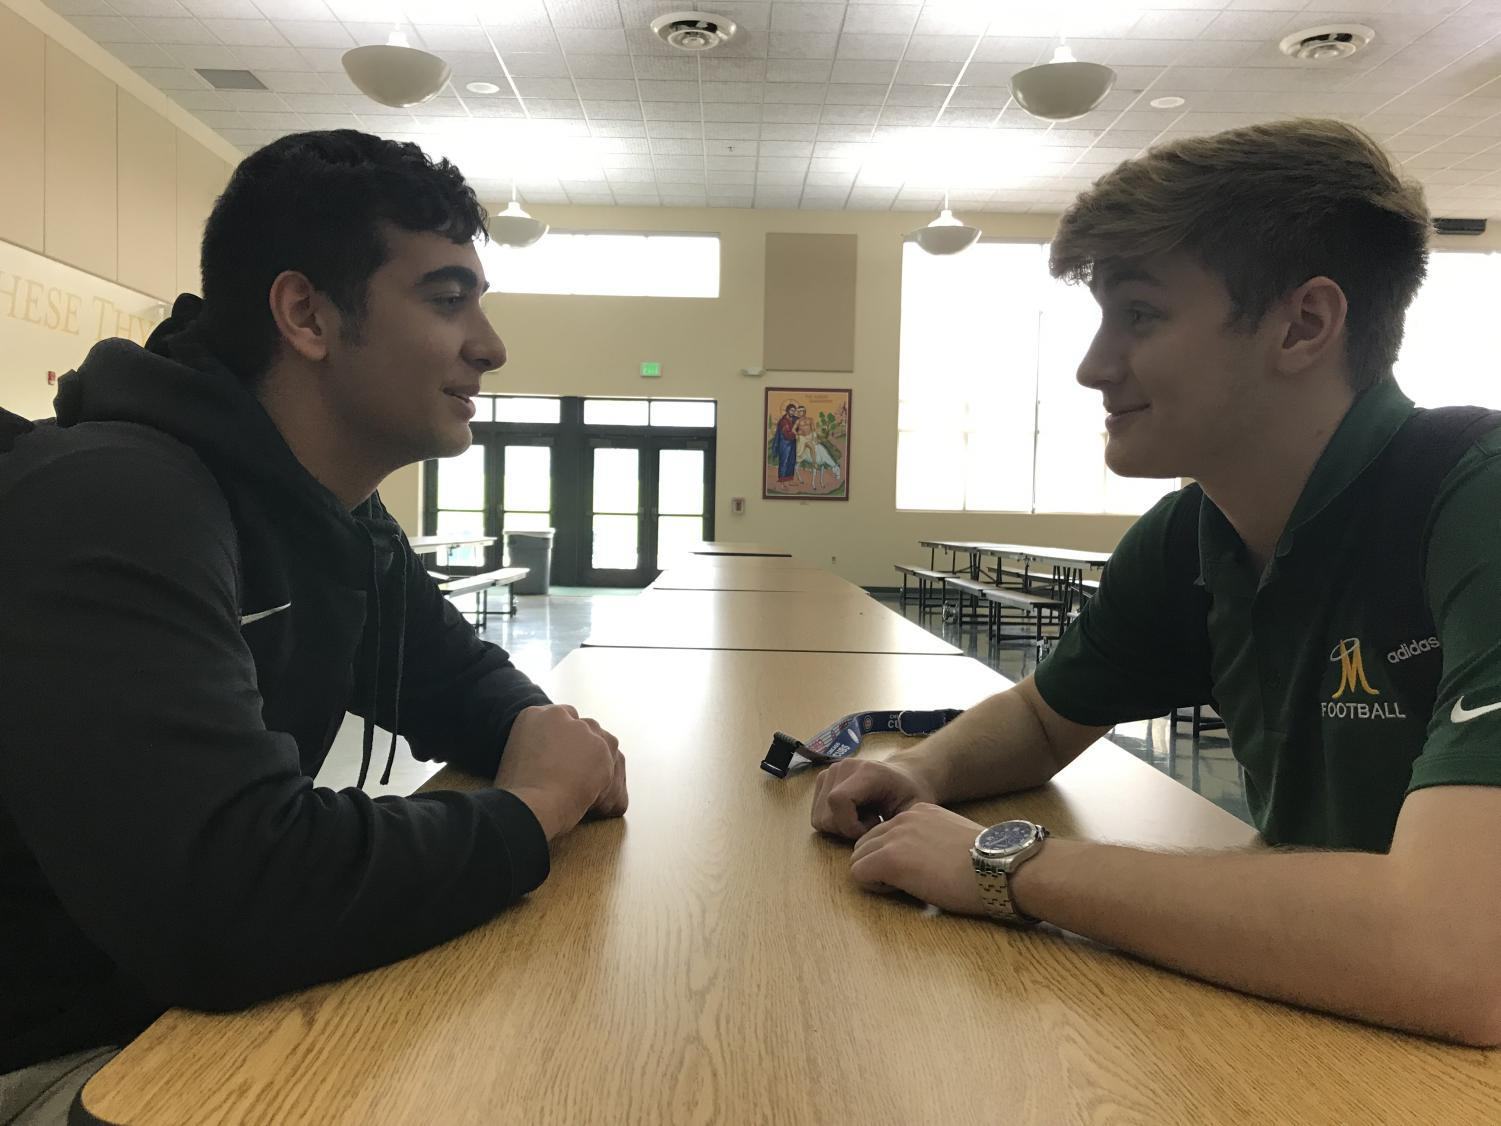 Parsa Sar-Sangi and Revere Laird, members of the Miner Men mentorship program, are pictures during on of their weekly check-ins.